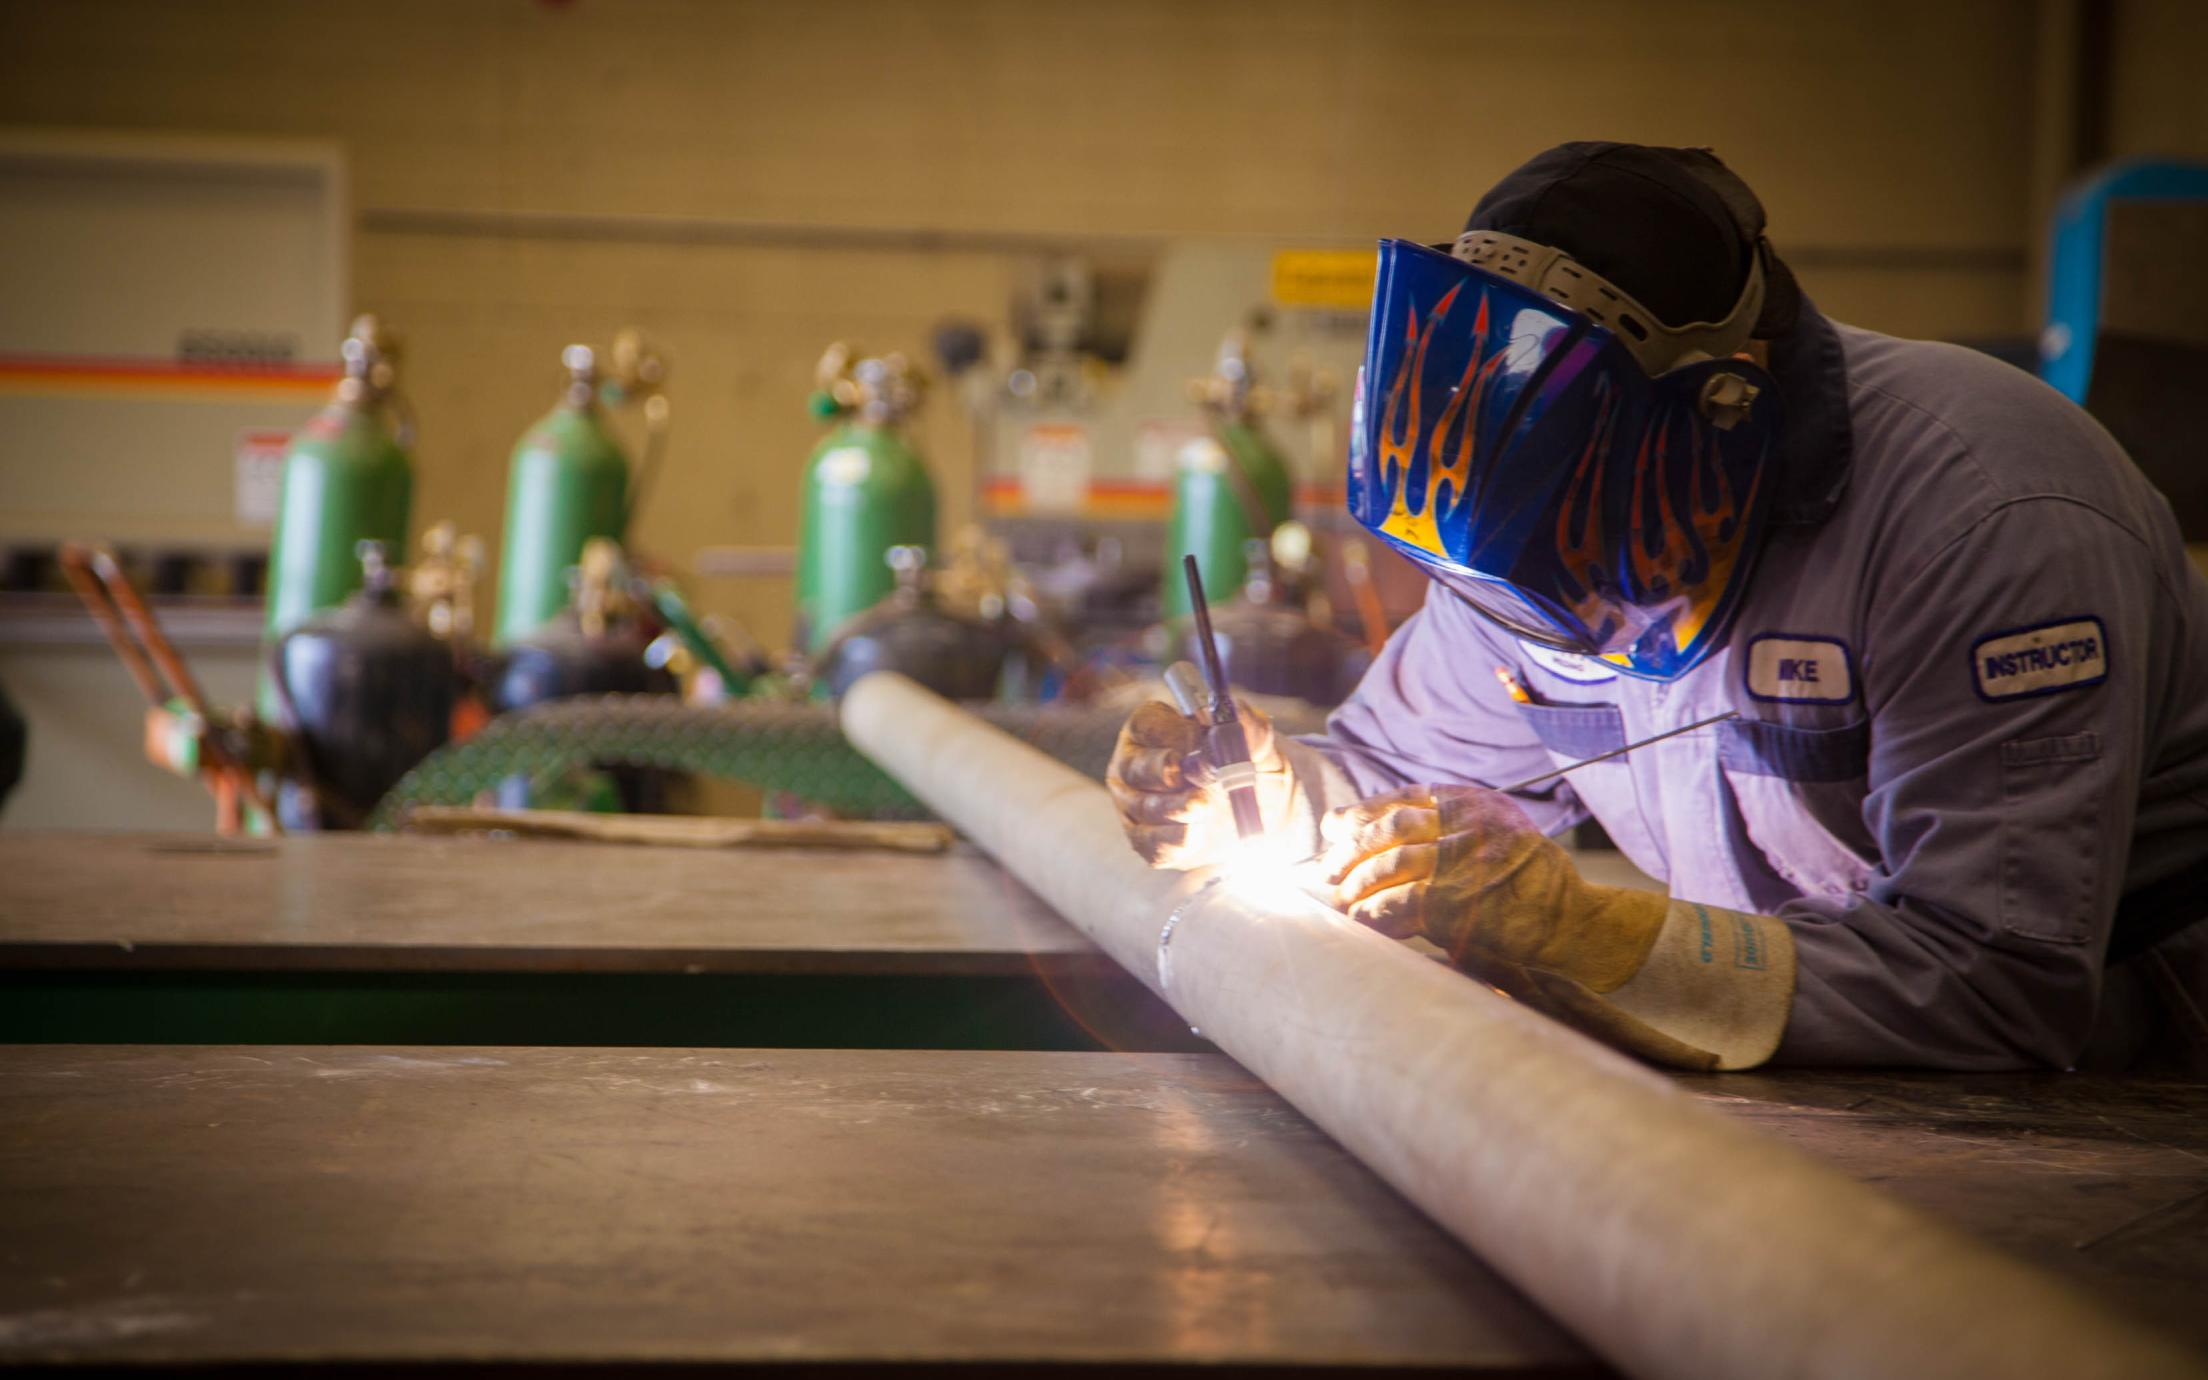 VIU's Welding certificate students are provided with proficient practical knowledge